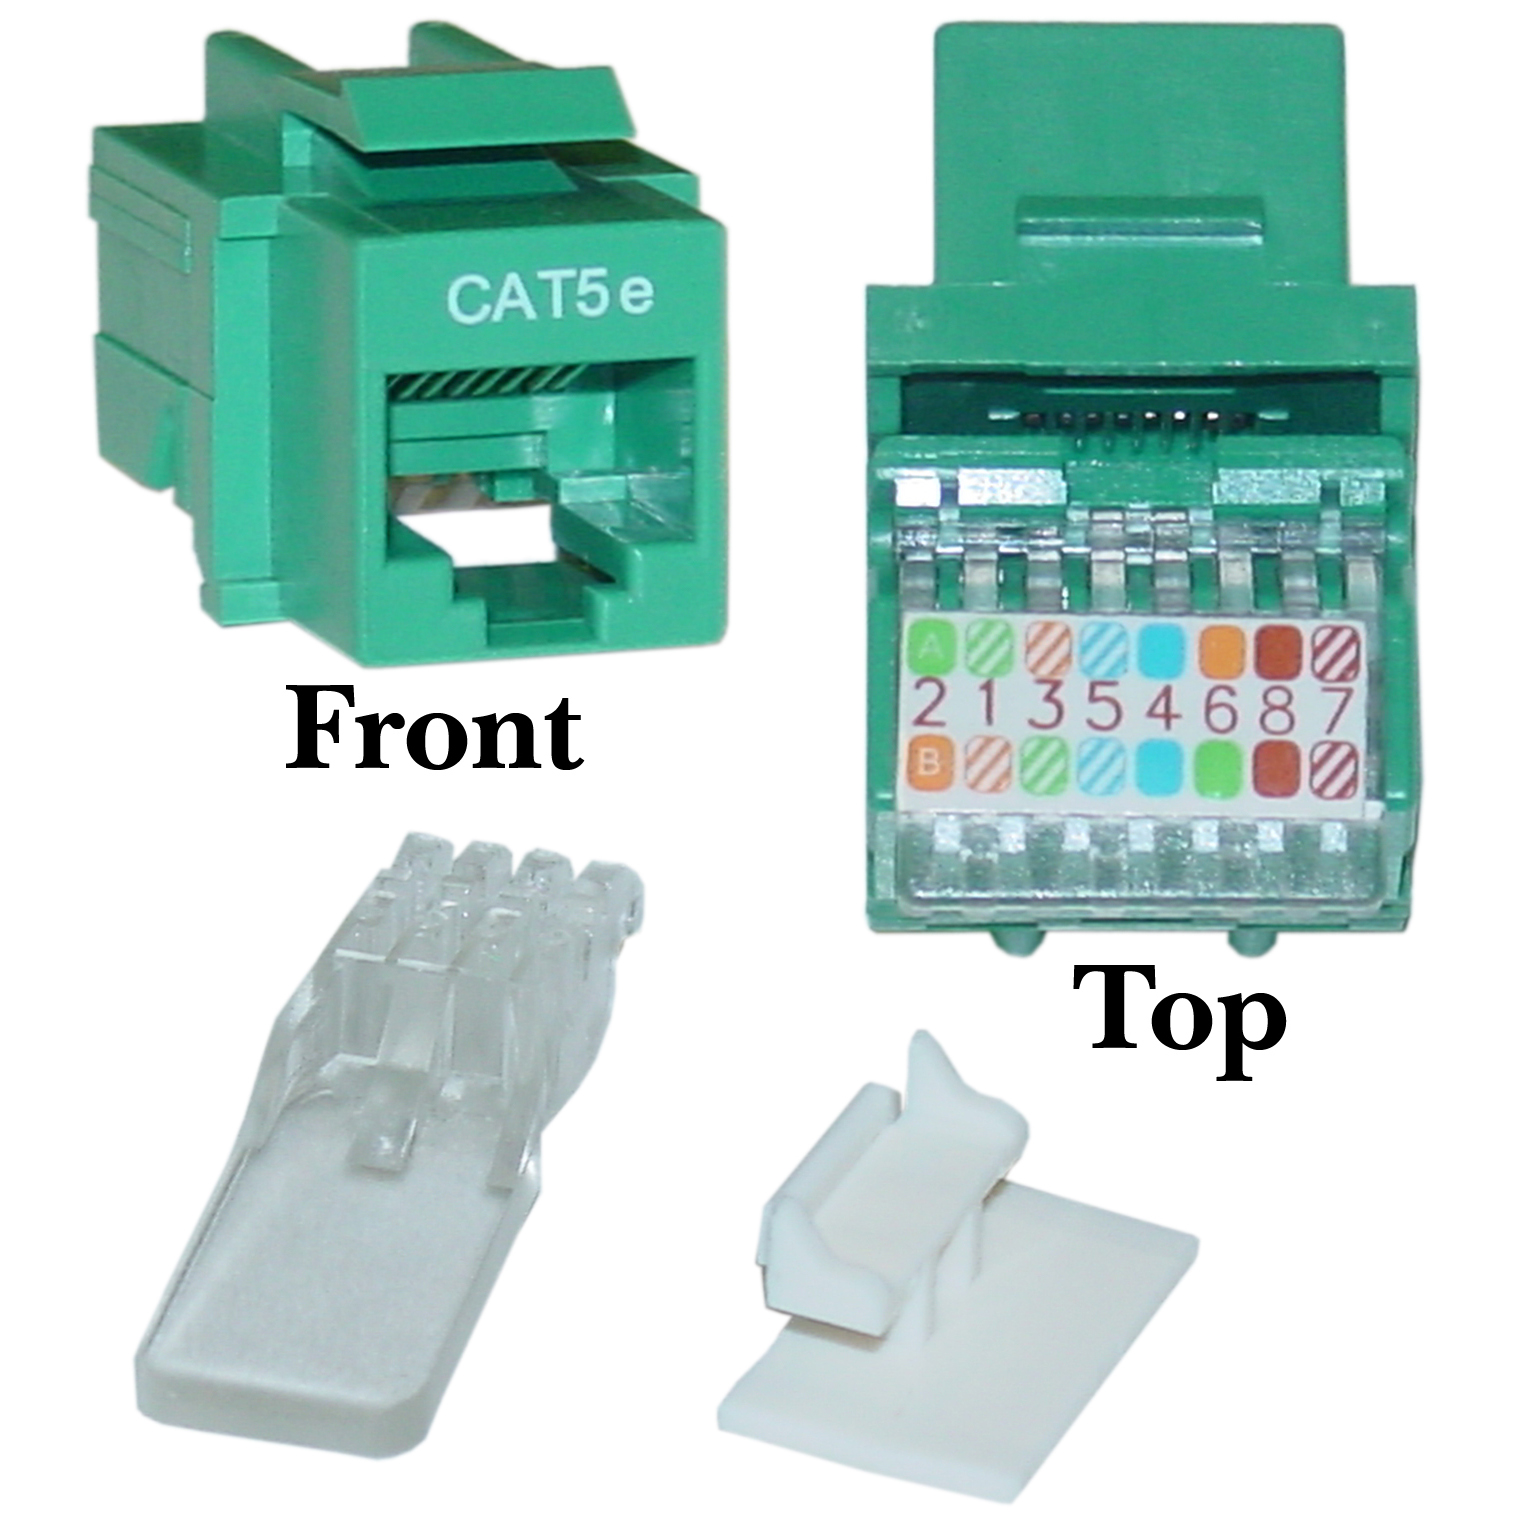 rj45 cat5e wiring diagram 30ampere ladestecker green keystone jack toolless